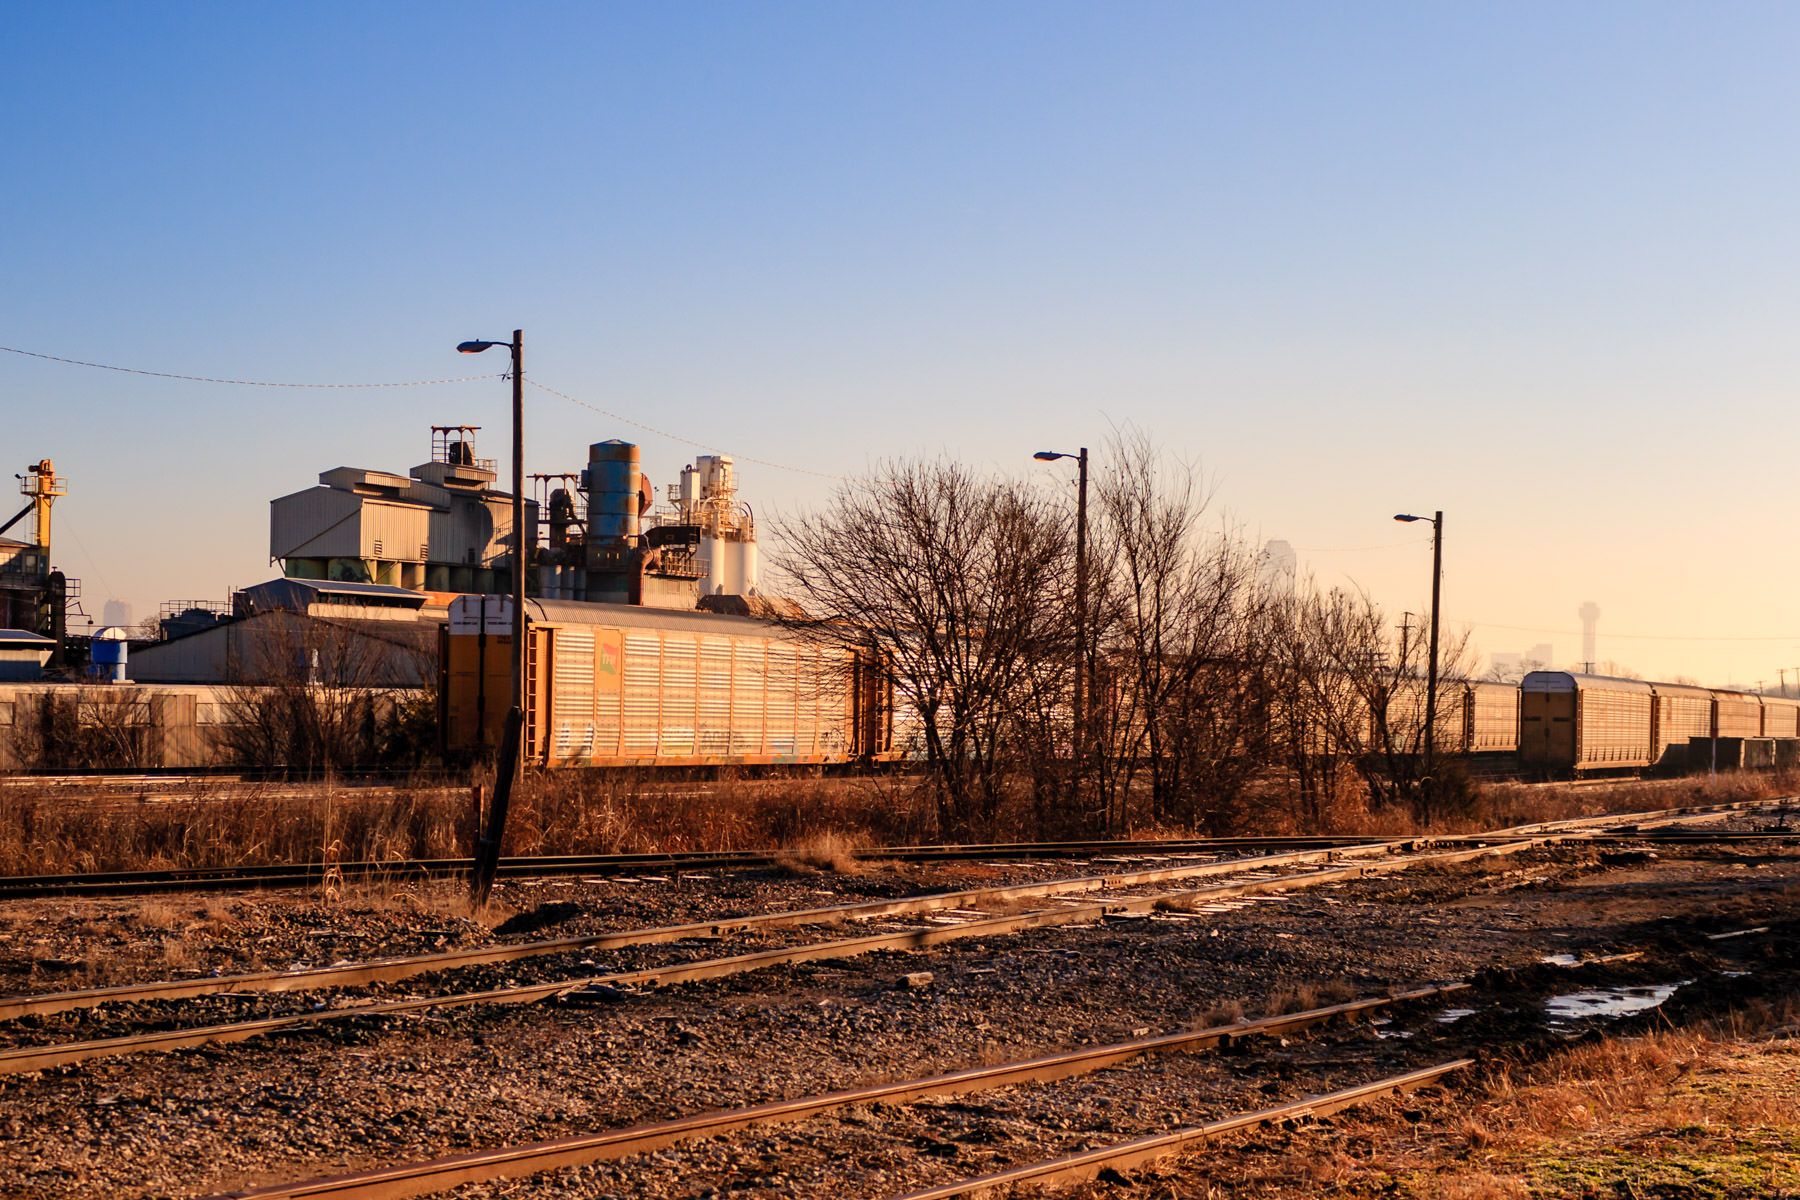 The first light of the day illuminates railcars in West Dallas.